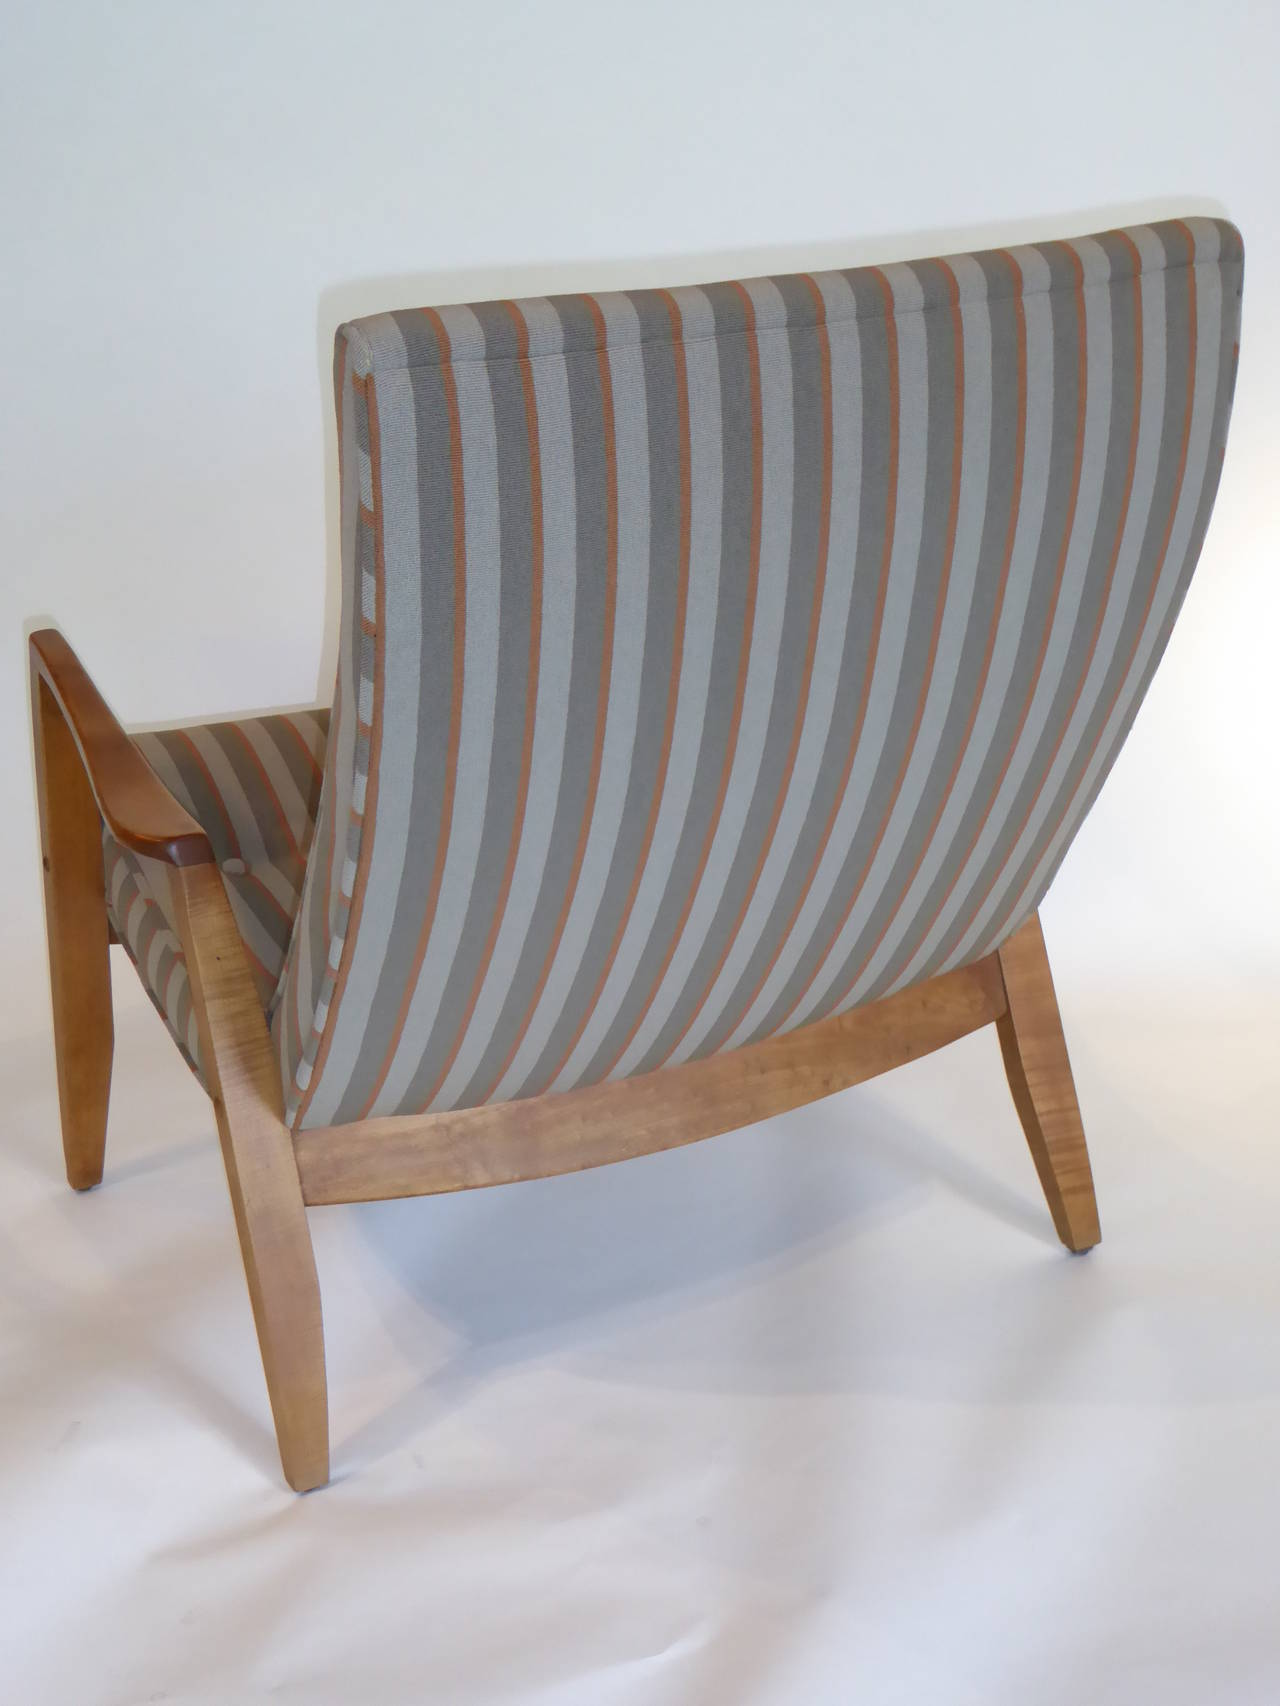 1950s Milo Baughman Scoop Lounge Chair and Ottoman For Sale 3